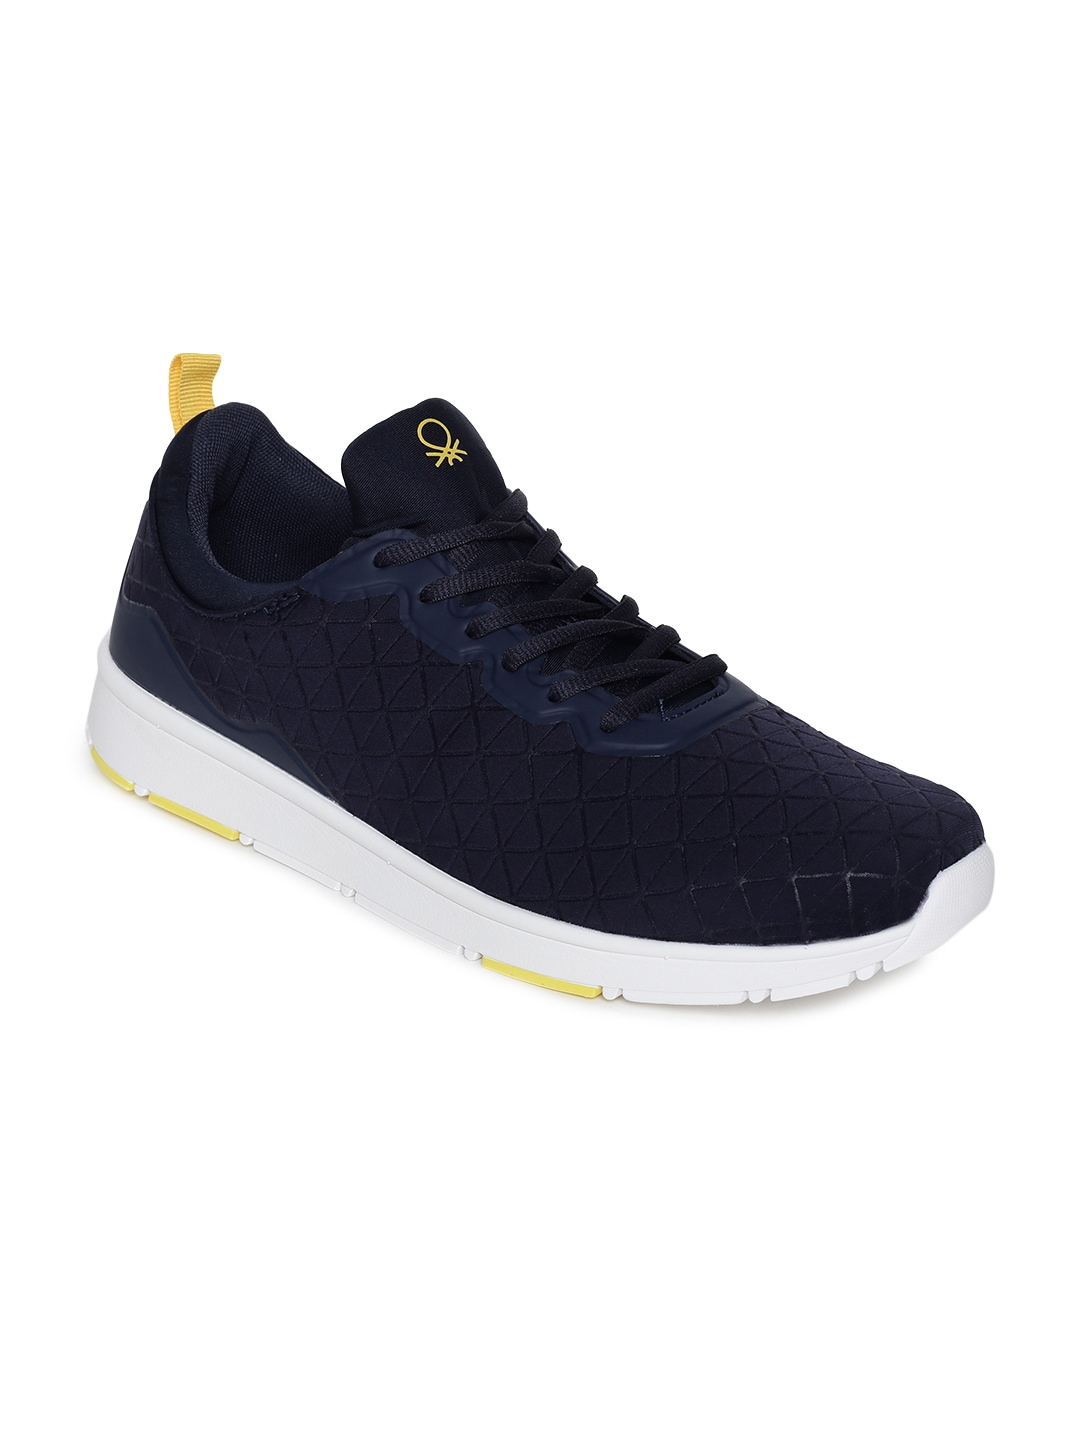 9f646d4d3728a United Colors of Benetton Shoes - Buy UCB Sneakers Online